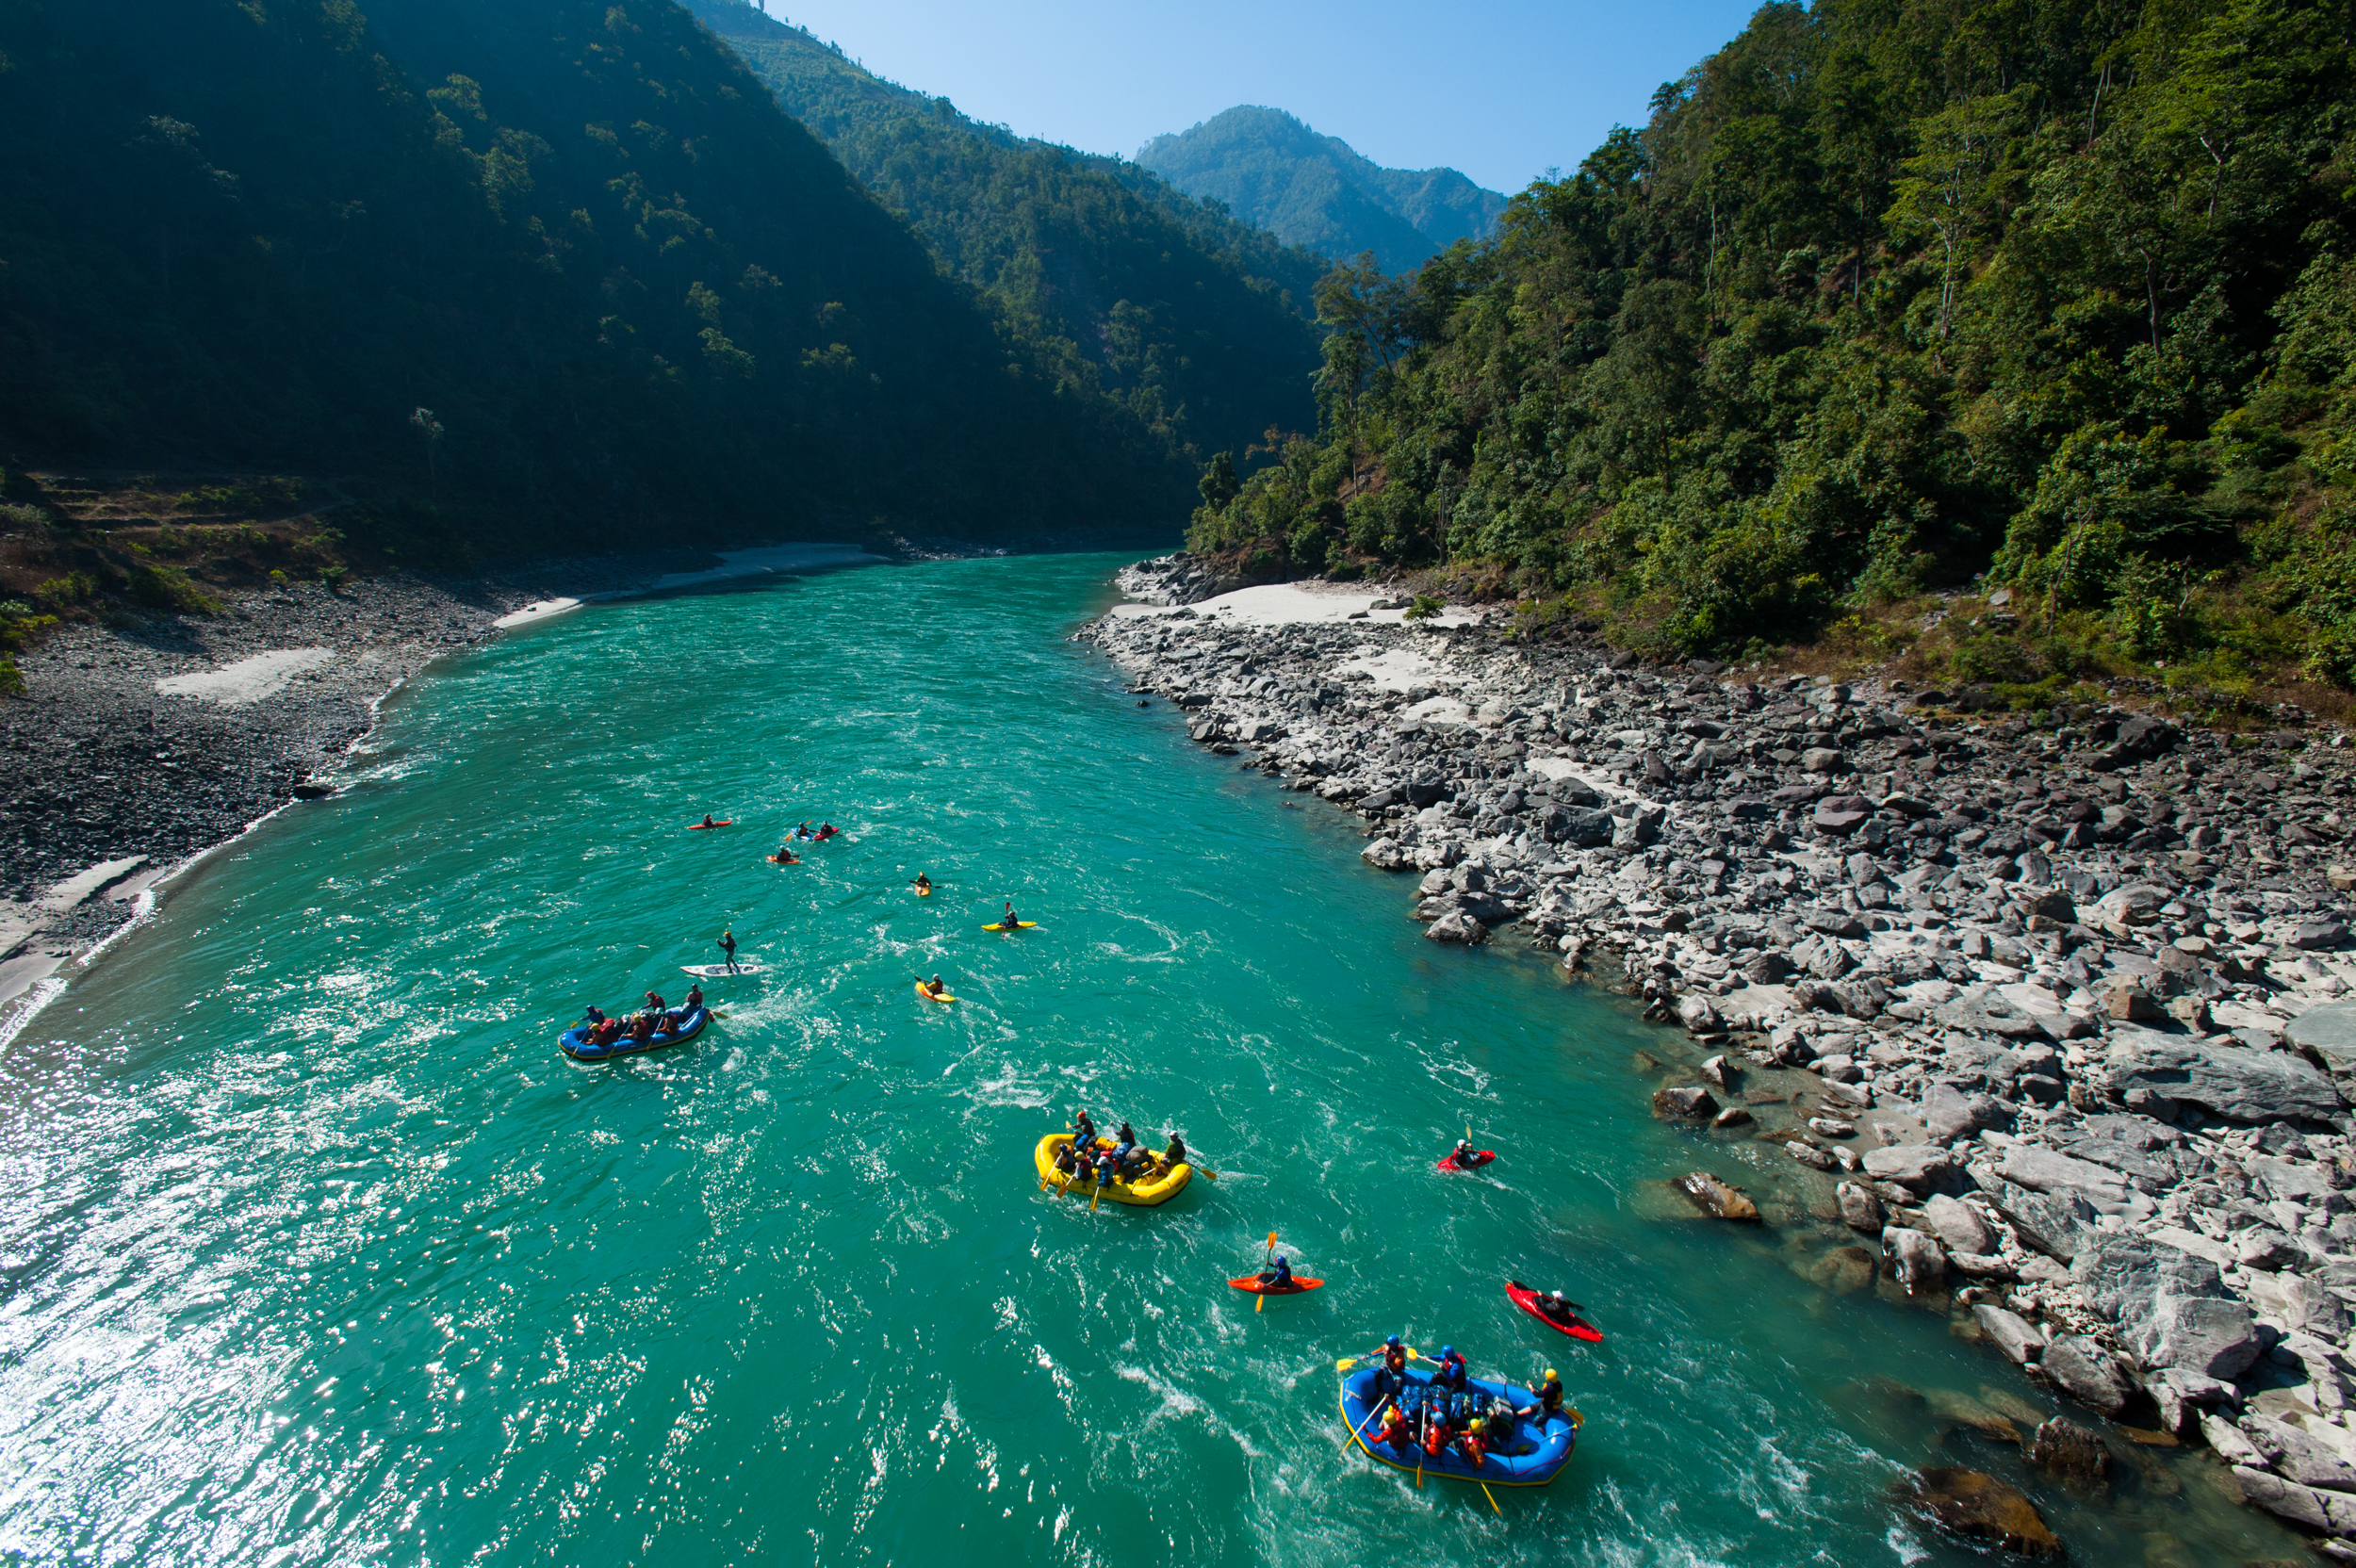 The future of the Karnali, and the people and rare species that depend on its water, lies in the balance. Nepal is in the midst of a drive to harness its water resources.